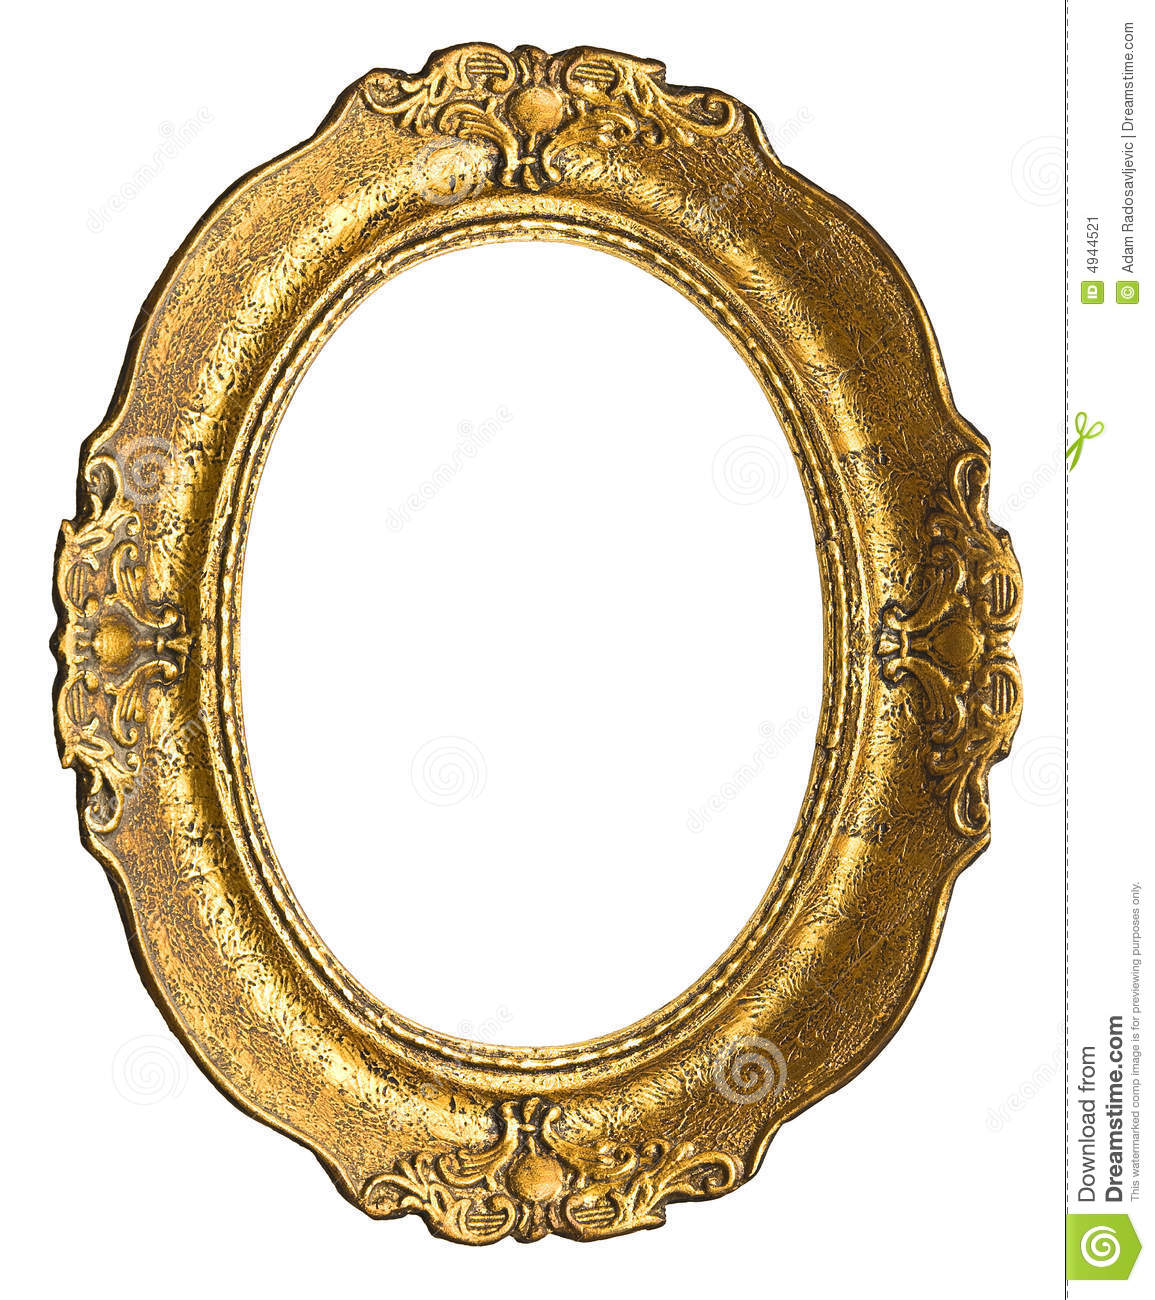 Old Gold Frame - Oval Stock Image - Image: 4944521